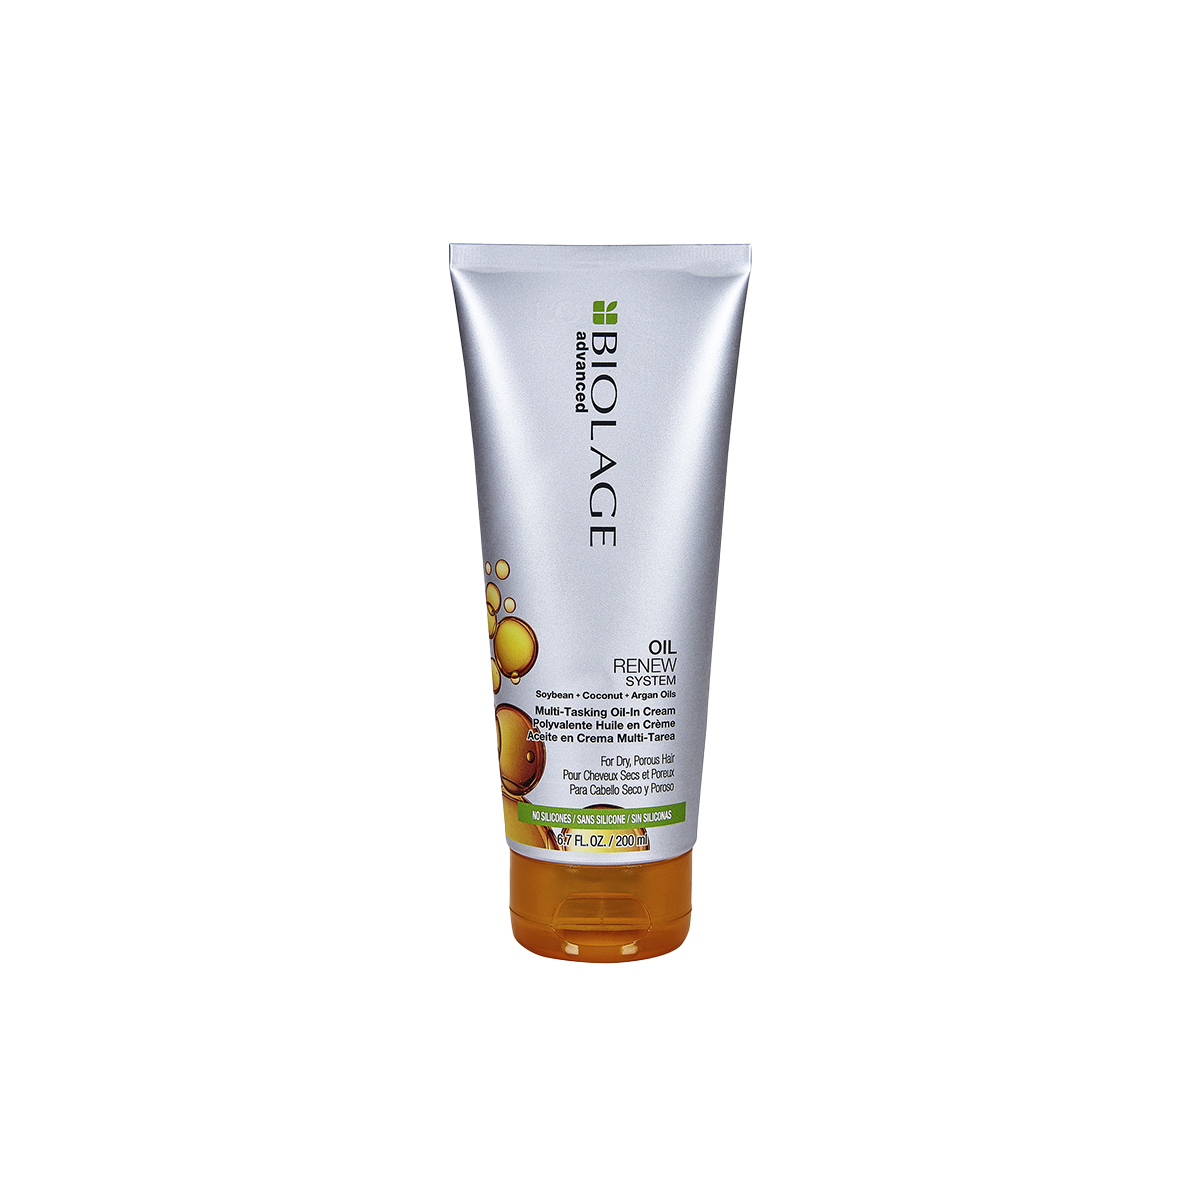 Biolage Oil Renew Multi-Tasking Oil-In-Cream Leave-In Treatment